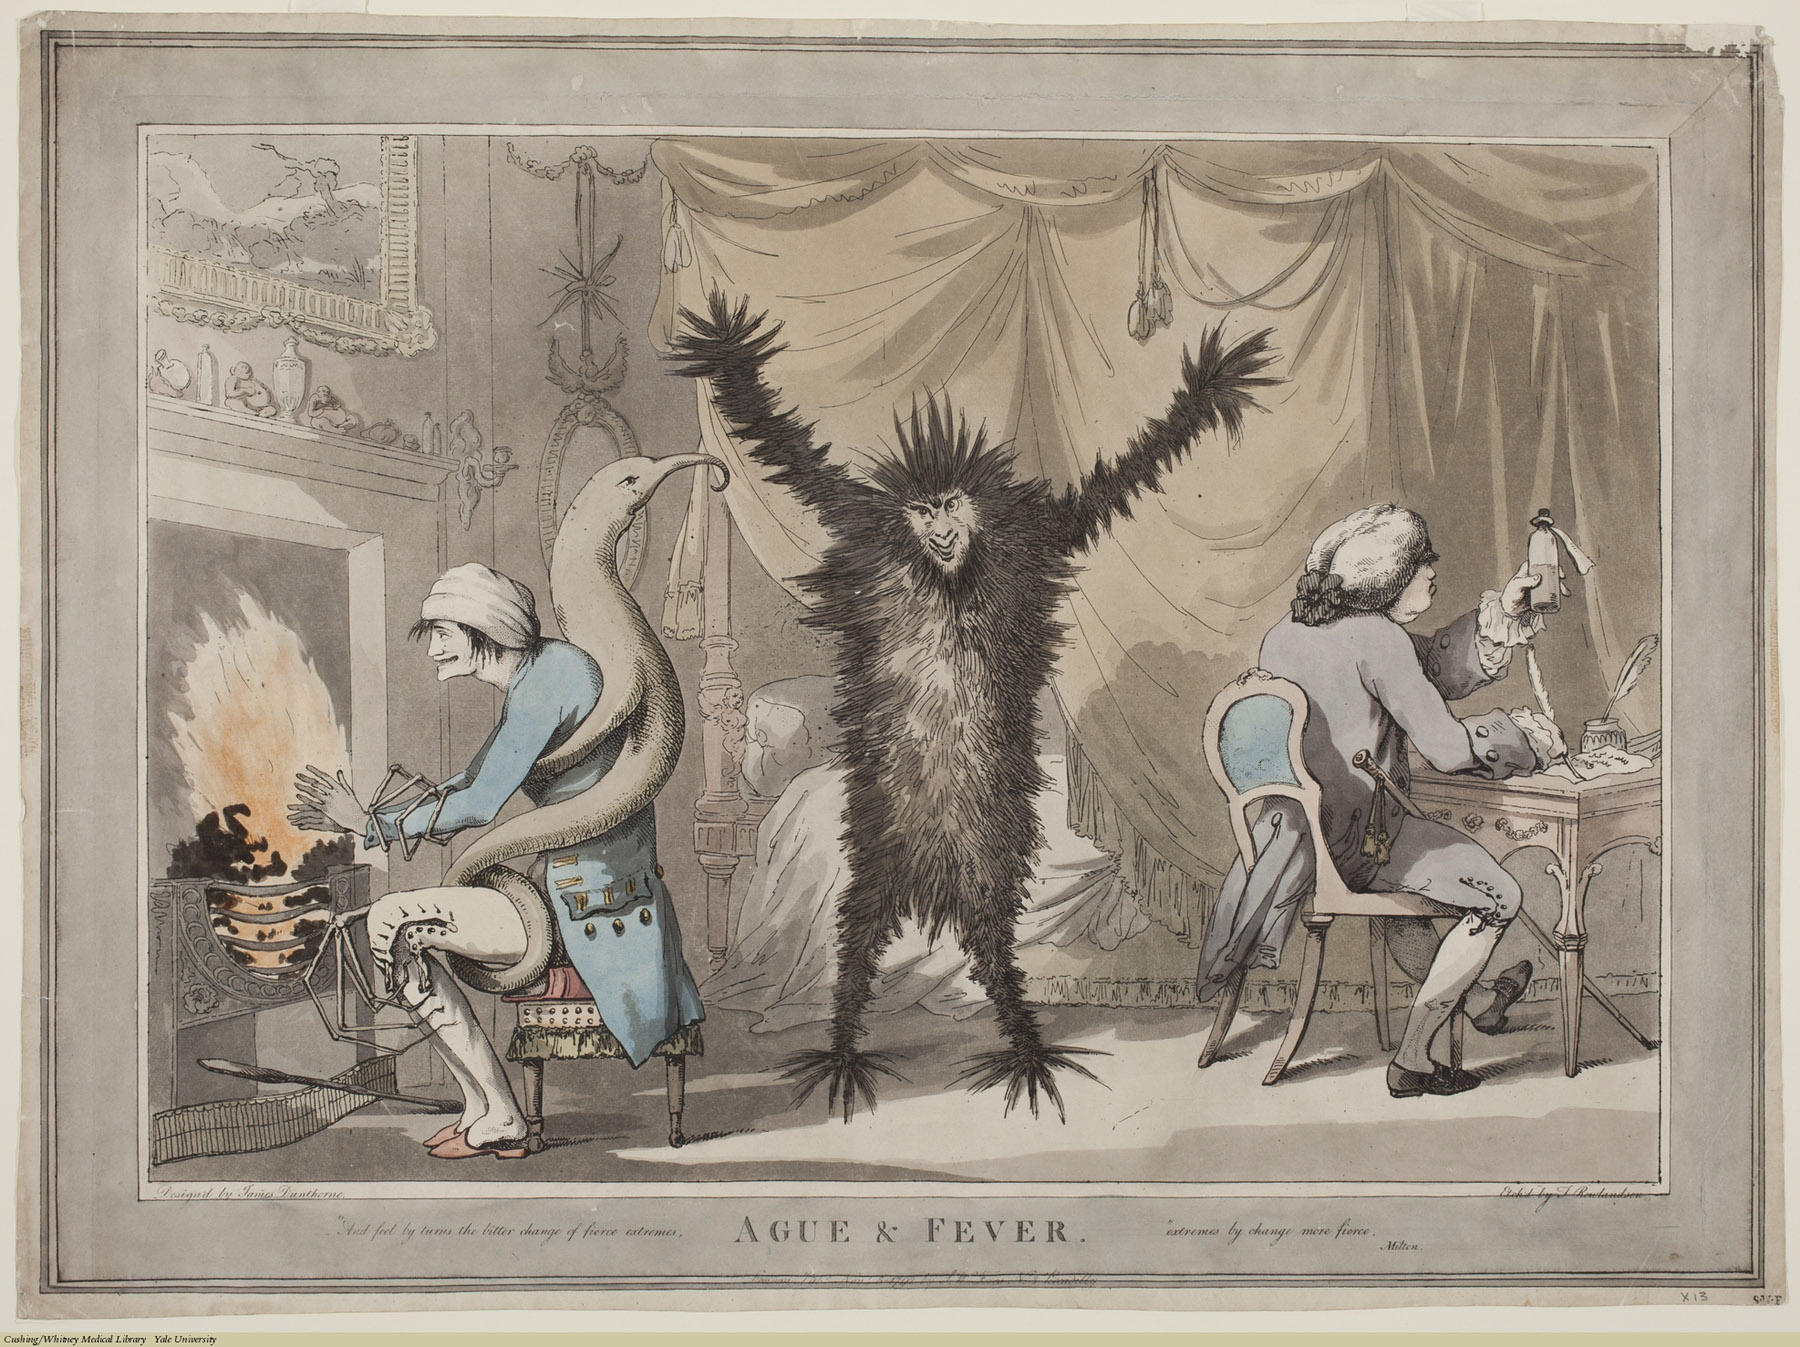 Ague & Fever. Thomas Rowlandson, Aquatint, colored, with ink & watercolor border, 1792. Subject: Ague, Fever, Demons & devils, Prescription of drugs.